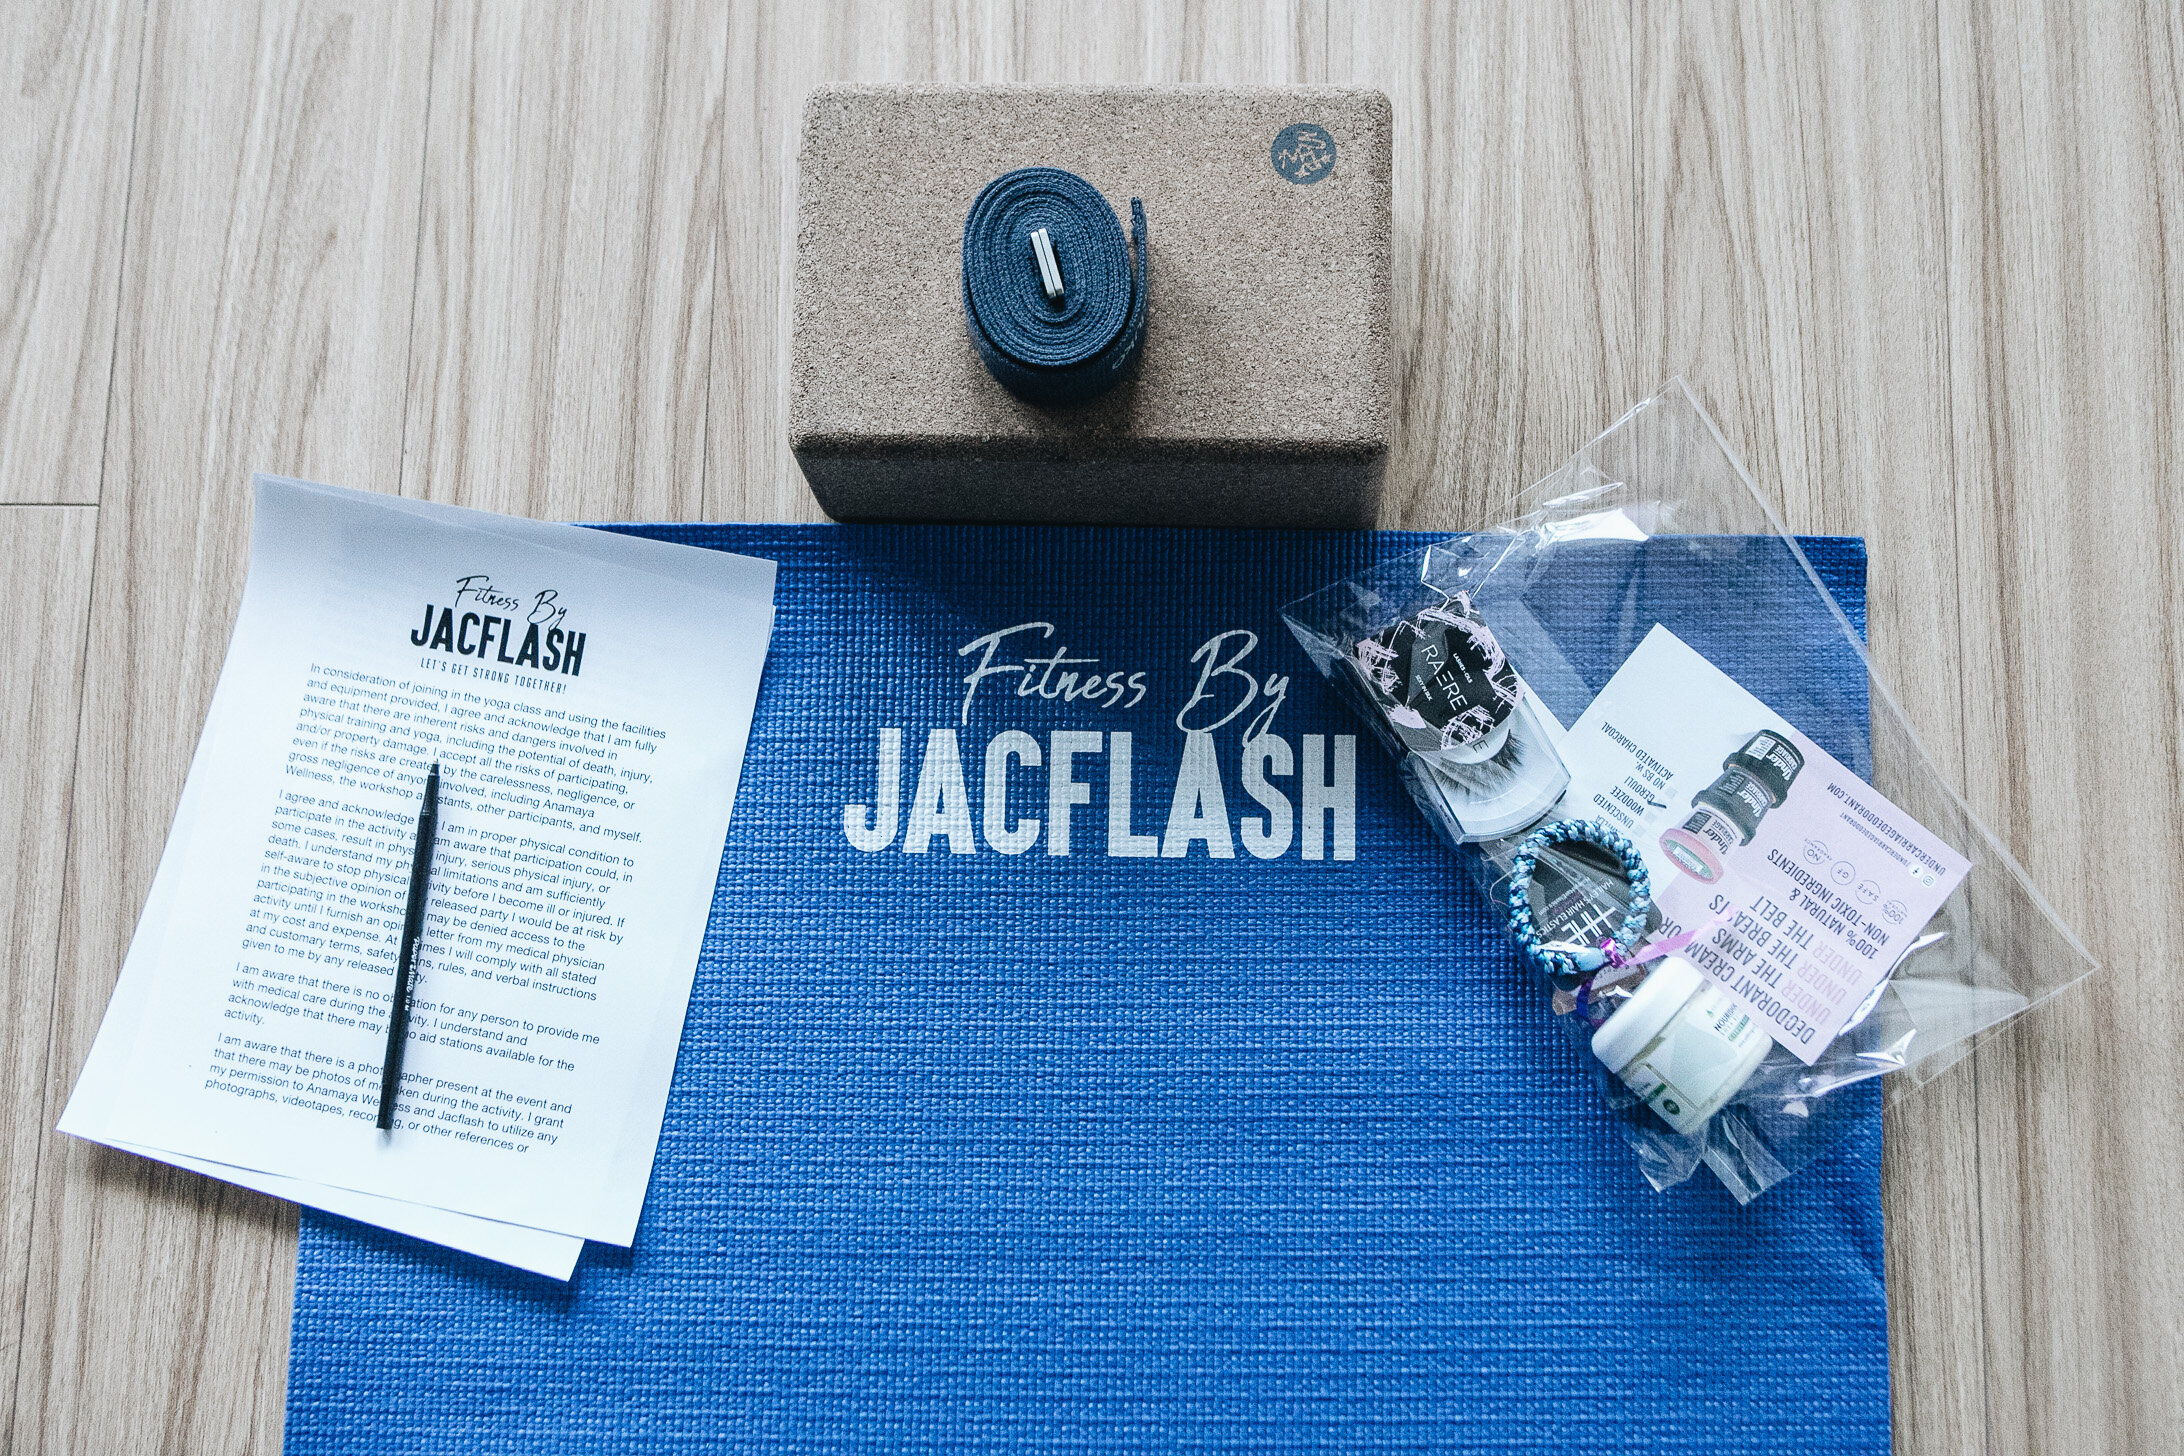 On Sunday evening Fitness by Jacflash had a Full Moon Cleanse + Release Yoga Workshop with Anamaya Wellness.